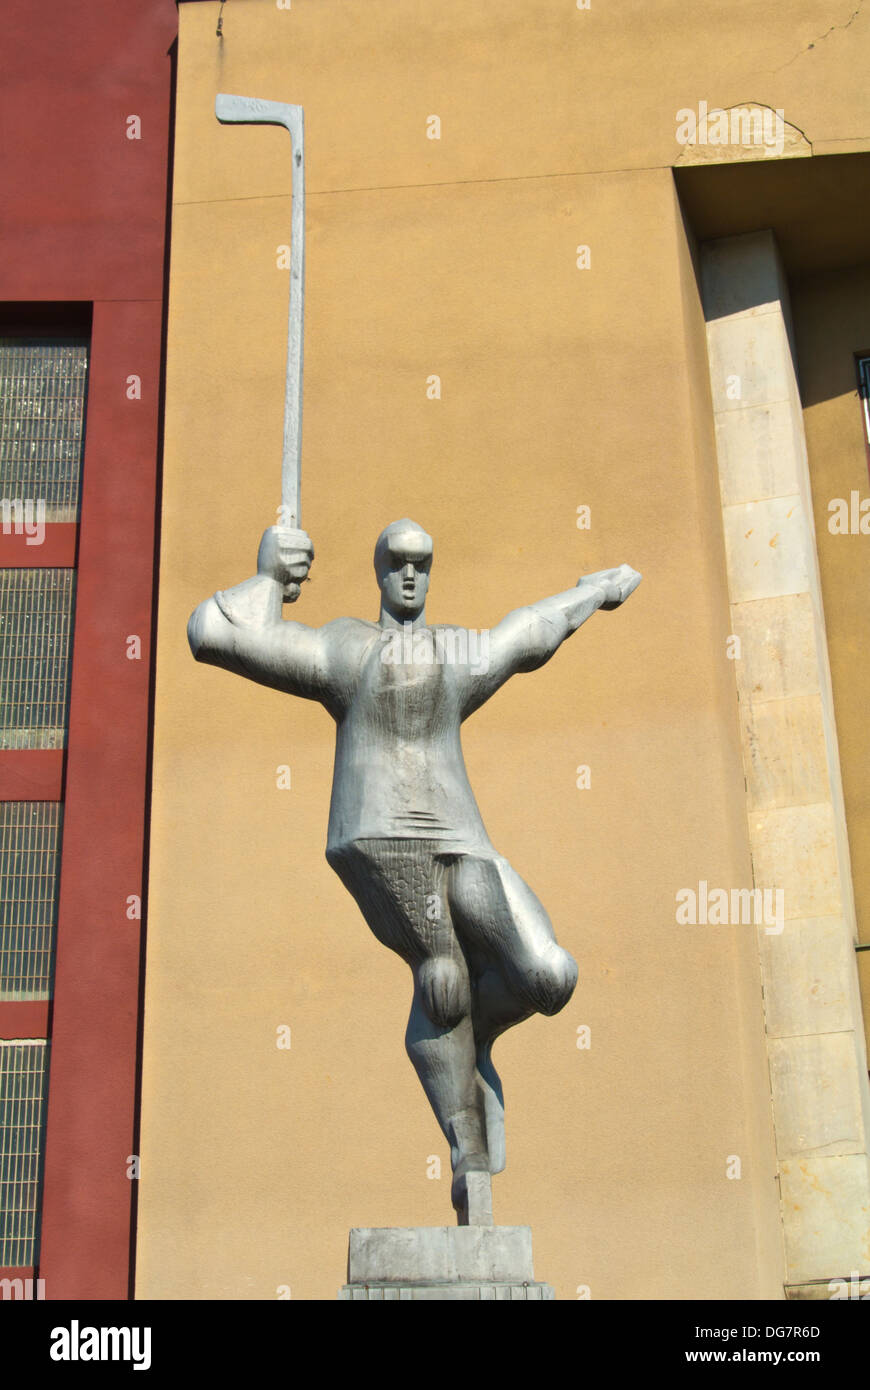 Hokejista the hockey player sculpture (1985) by Zdenek Nemecek in front of ice hockey arena at Vystaviste Holesovice, Prague - Stock Image